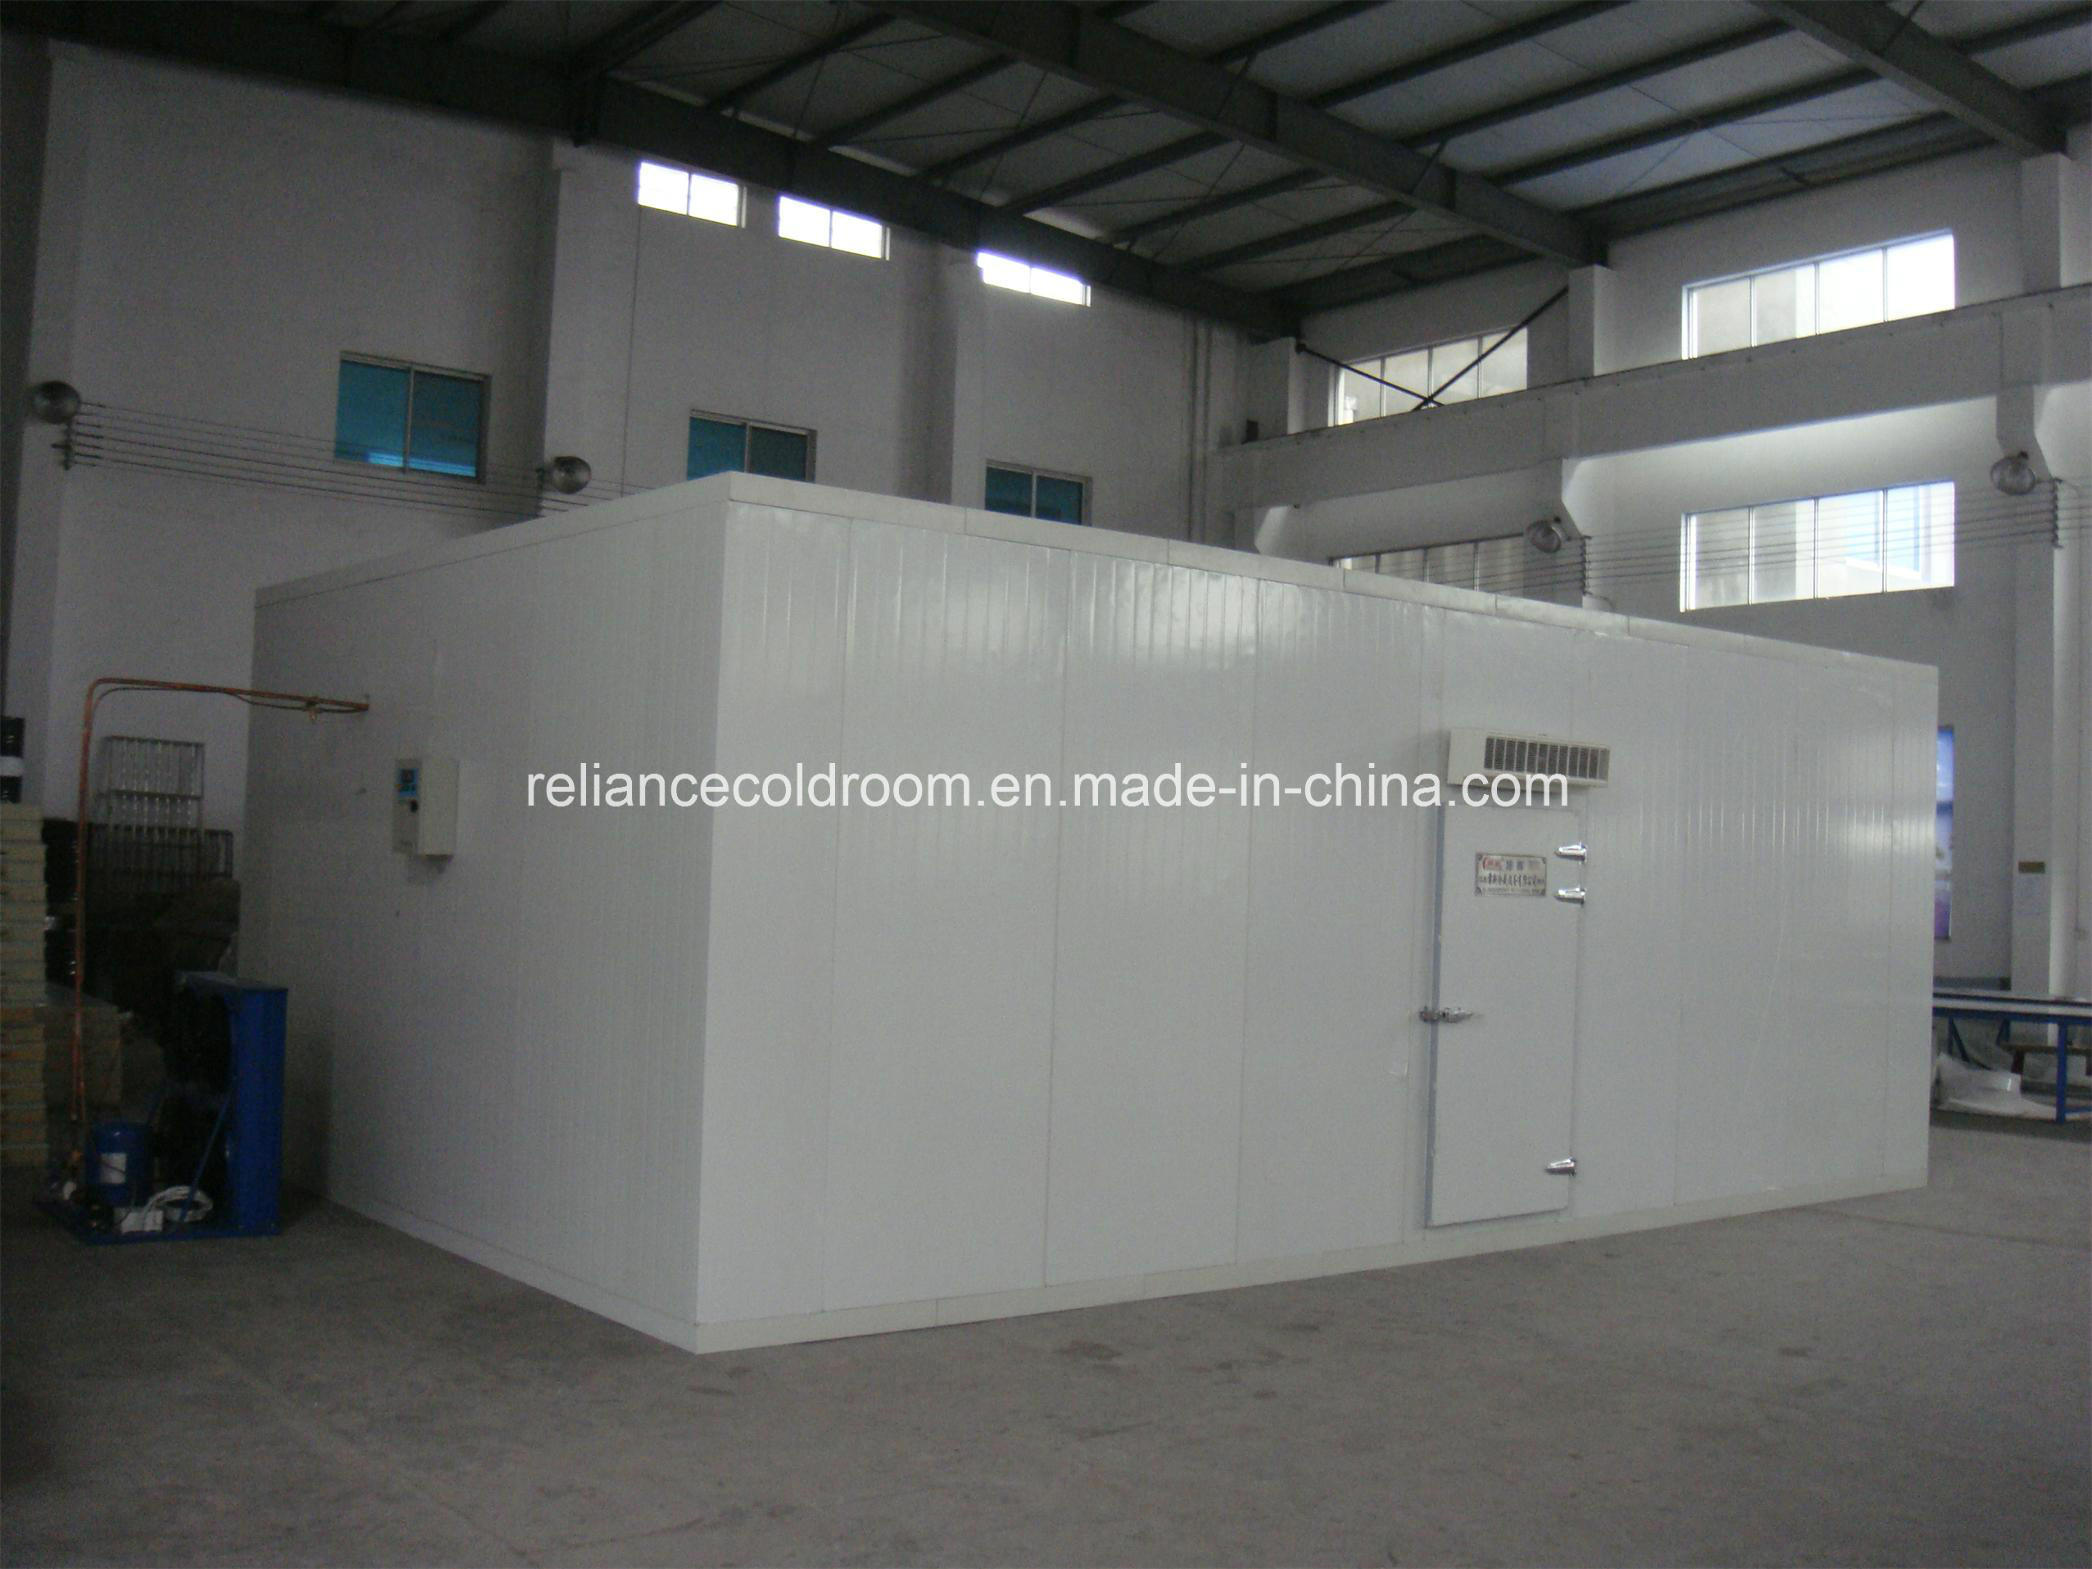 High Density Polyurethane Cold Room for Meat and Fish